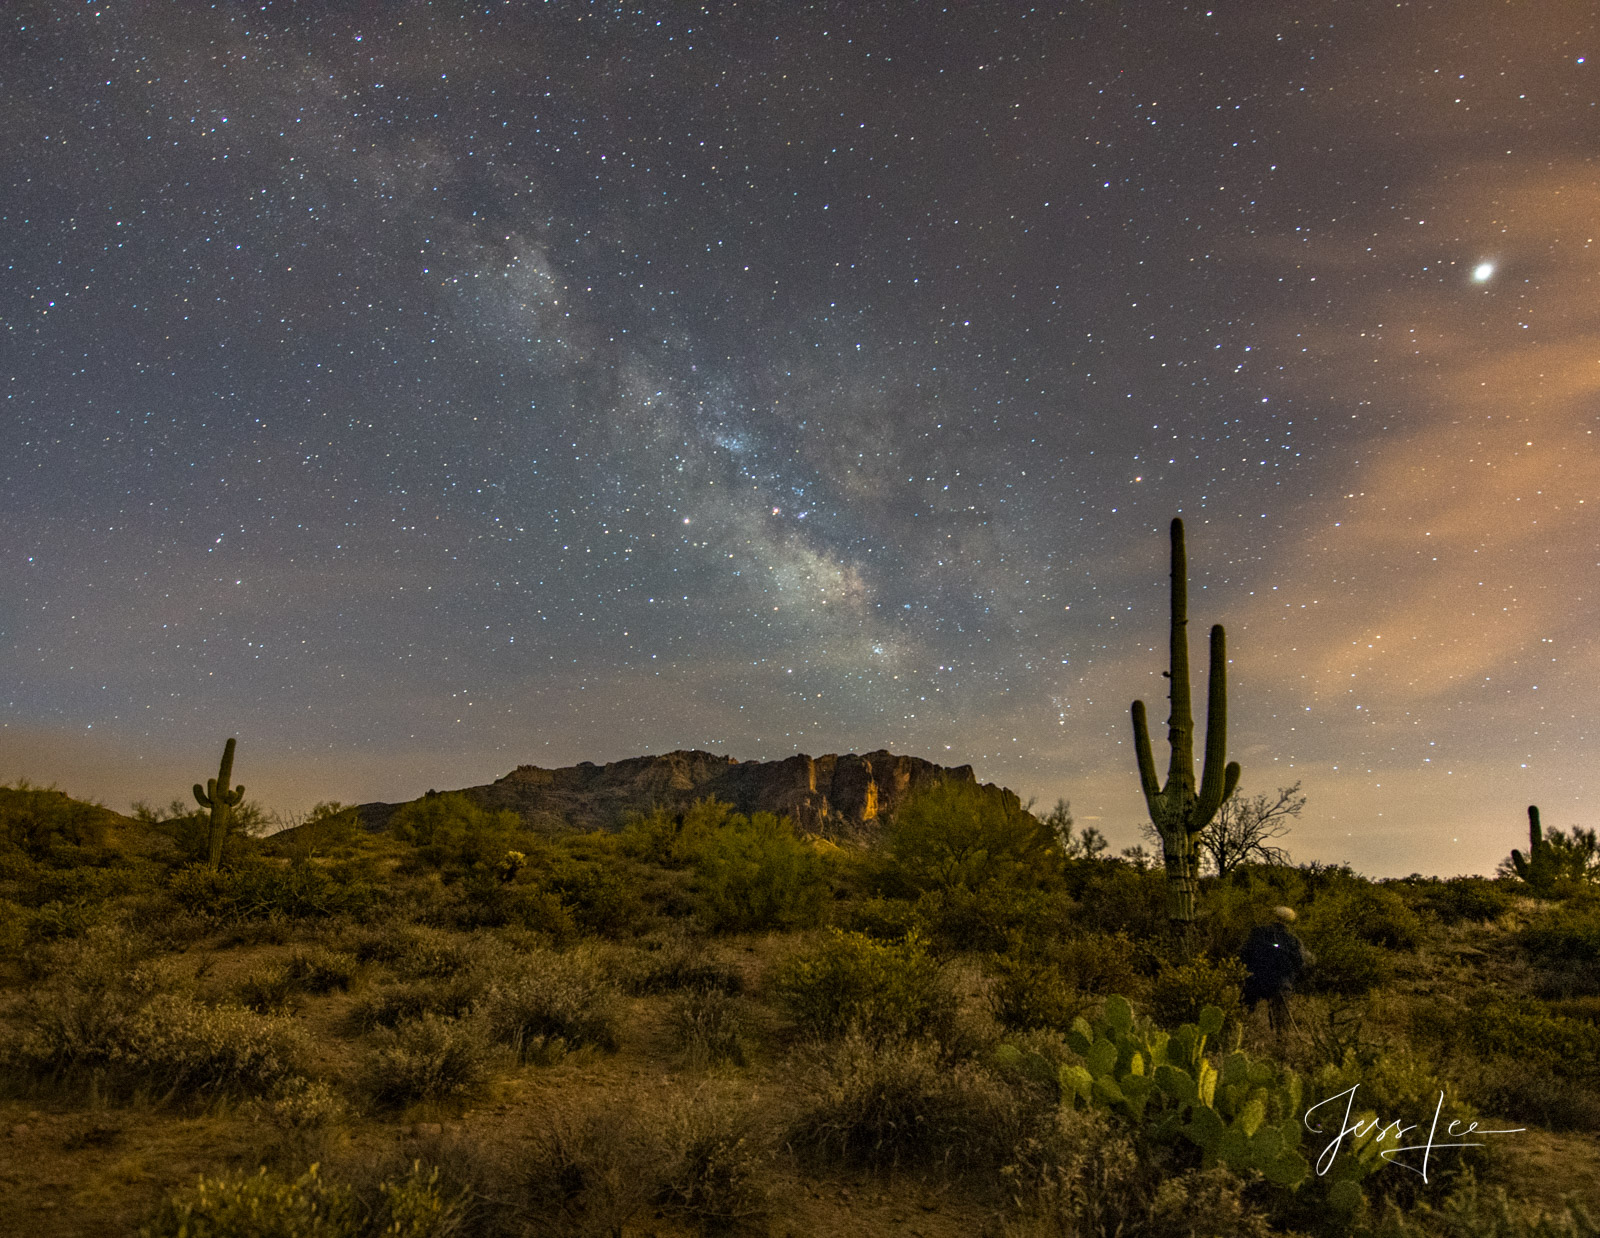 Milky Way covering the sky behind Superstition Mountains in Arizona.